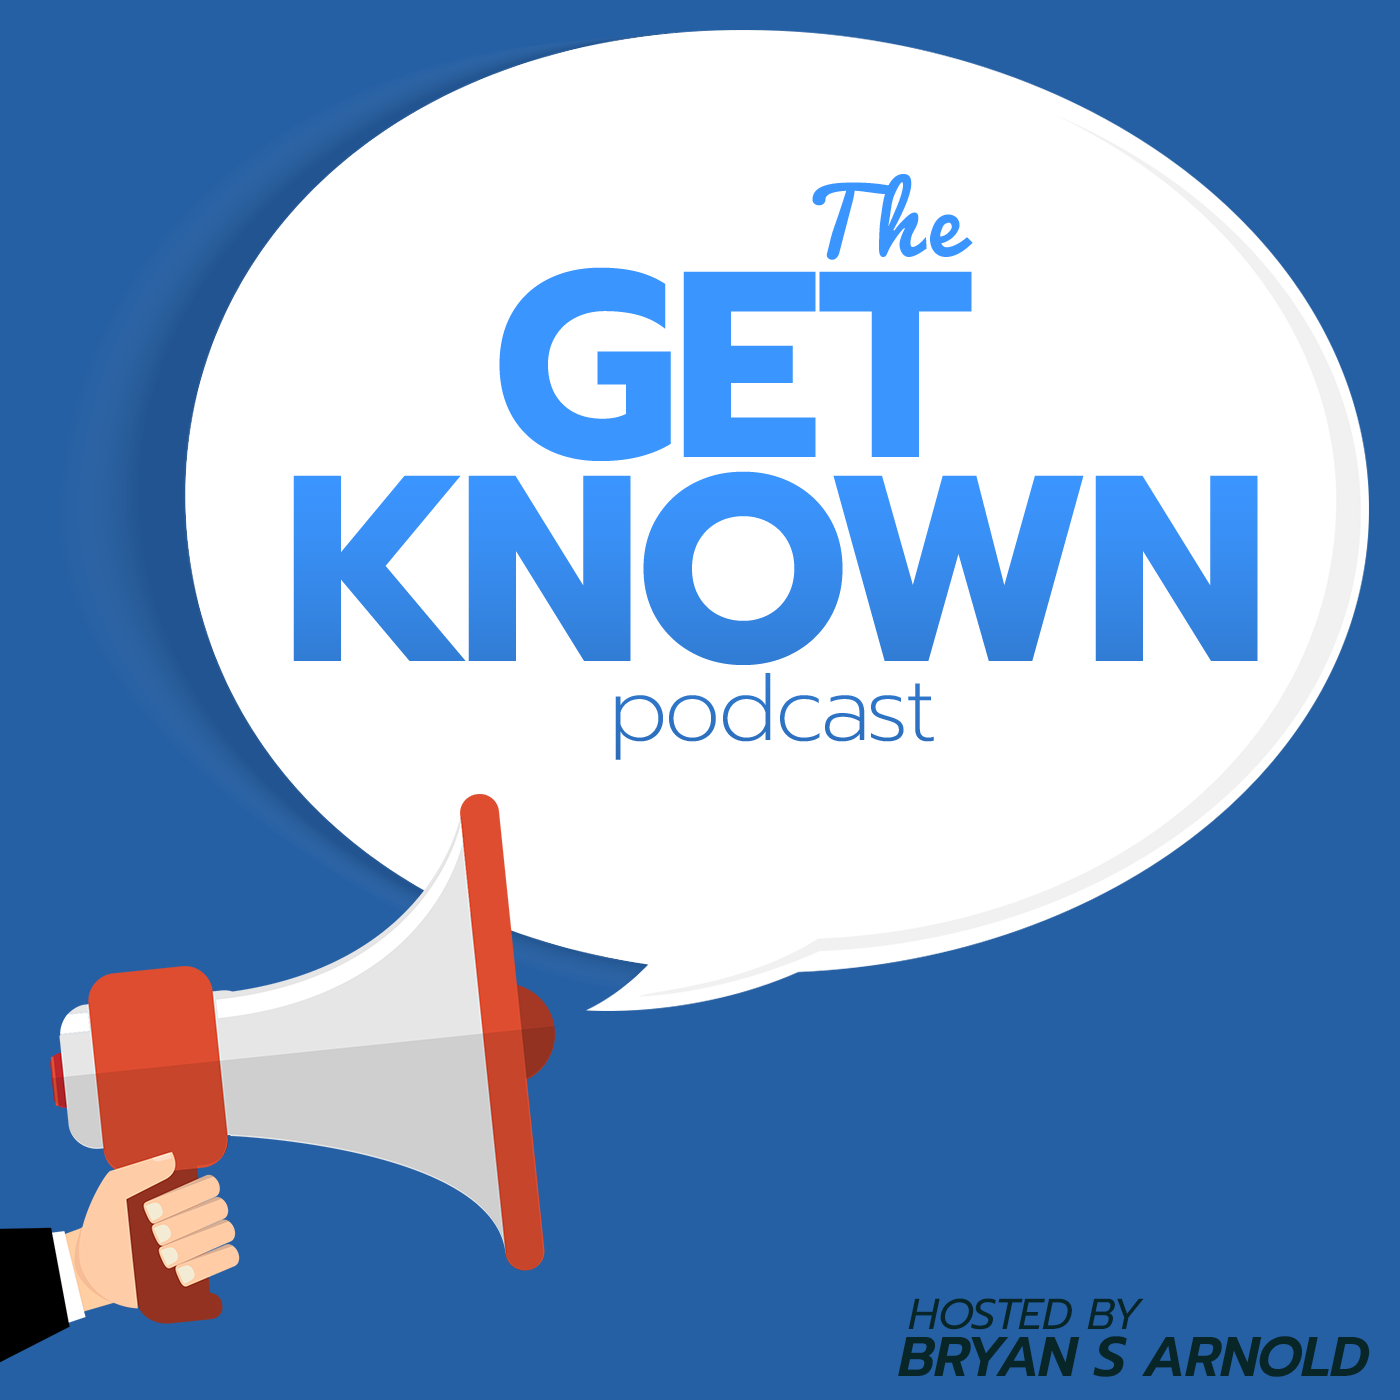 It's a great start for people just starting out in podcasting. It's affordable but still great quality. A win-win for the beginner podcaster.